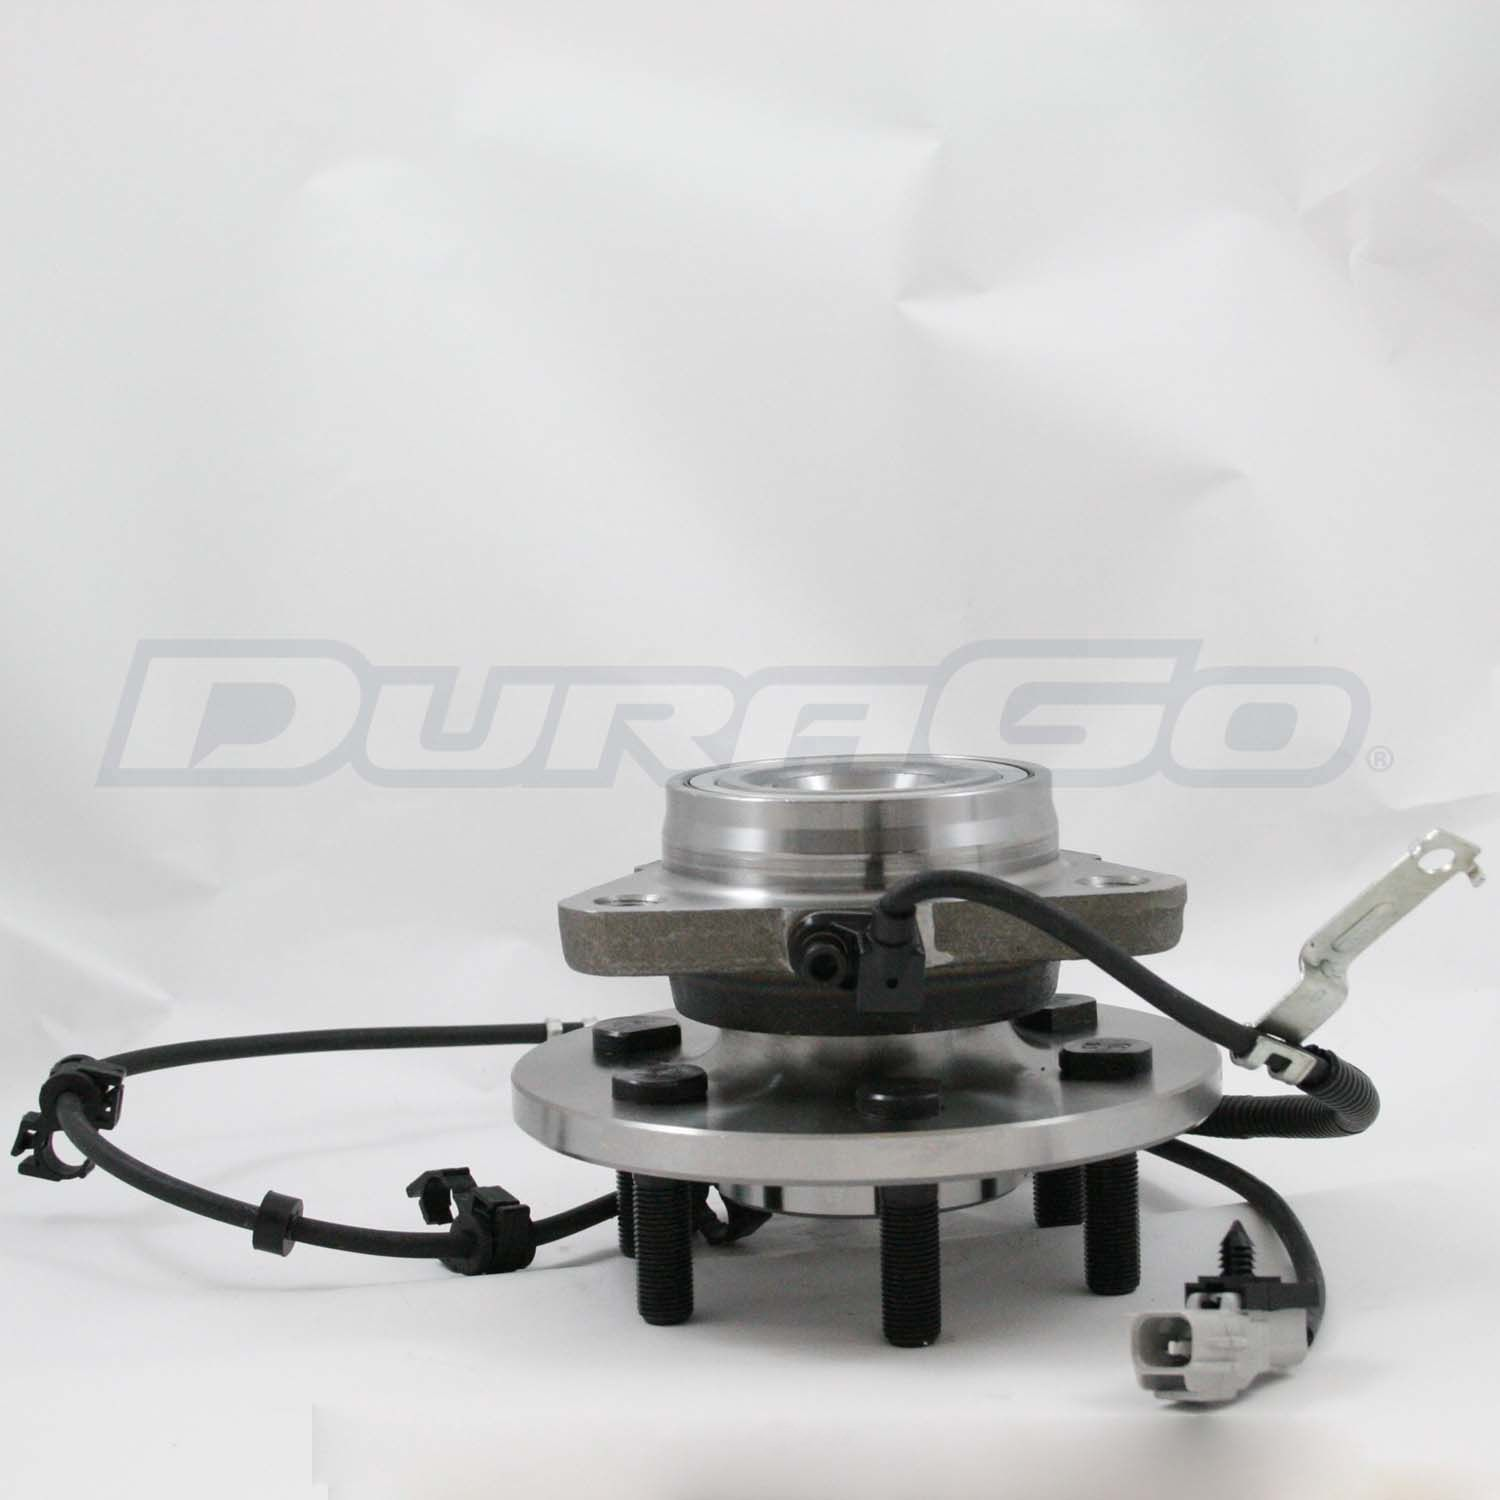 DURAGO - Axle Bearing and Hub Assembly - D48 295-15009